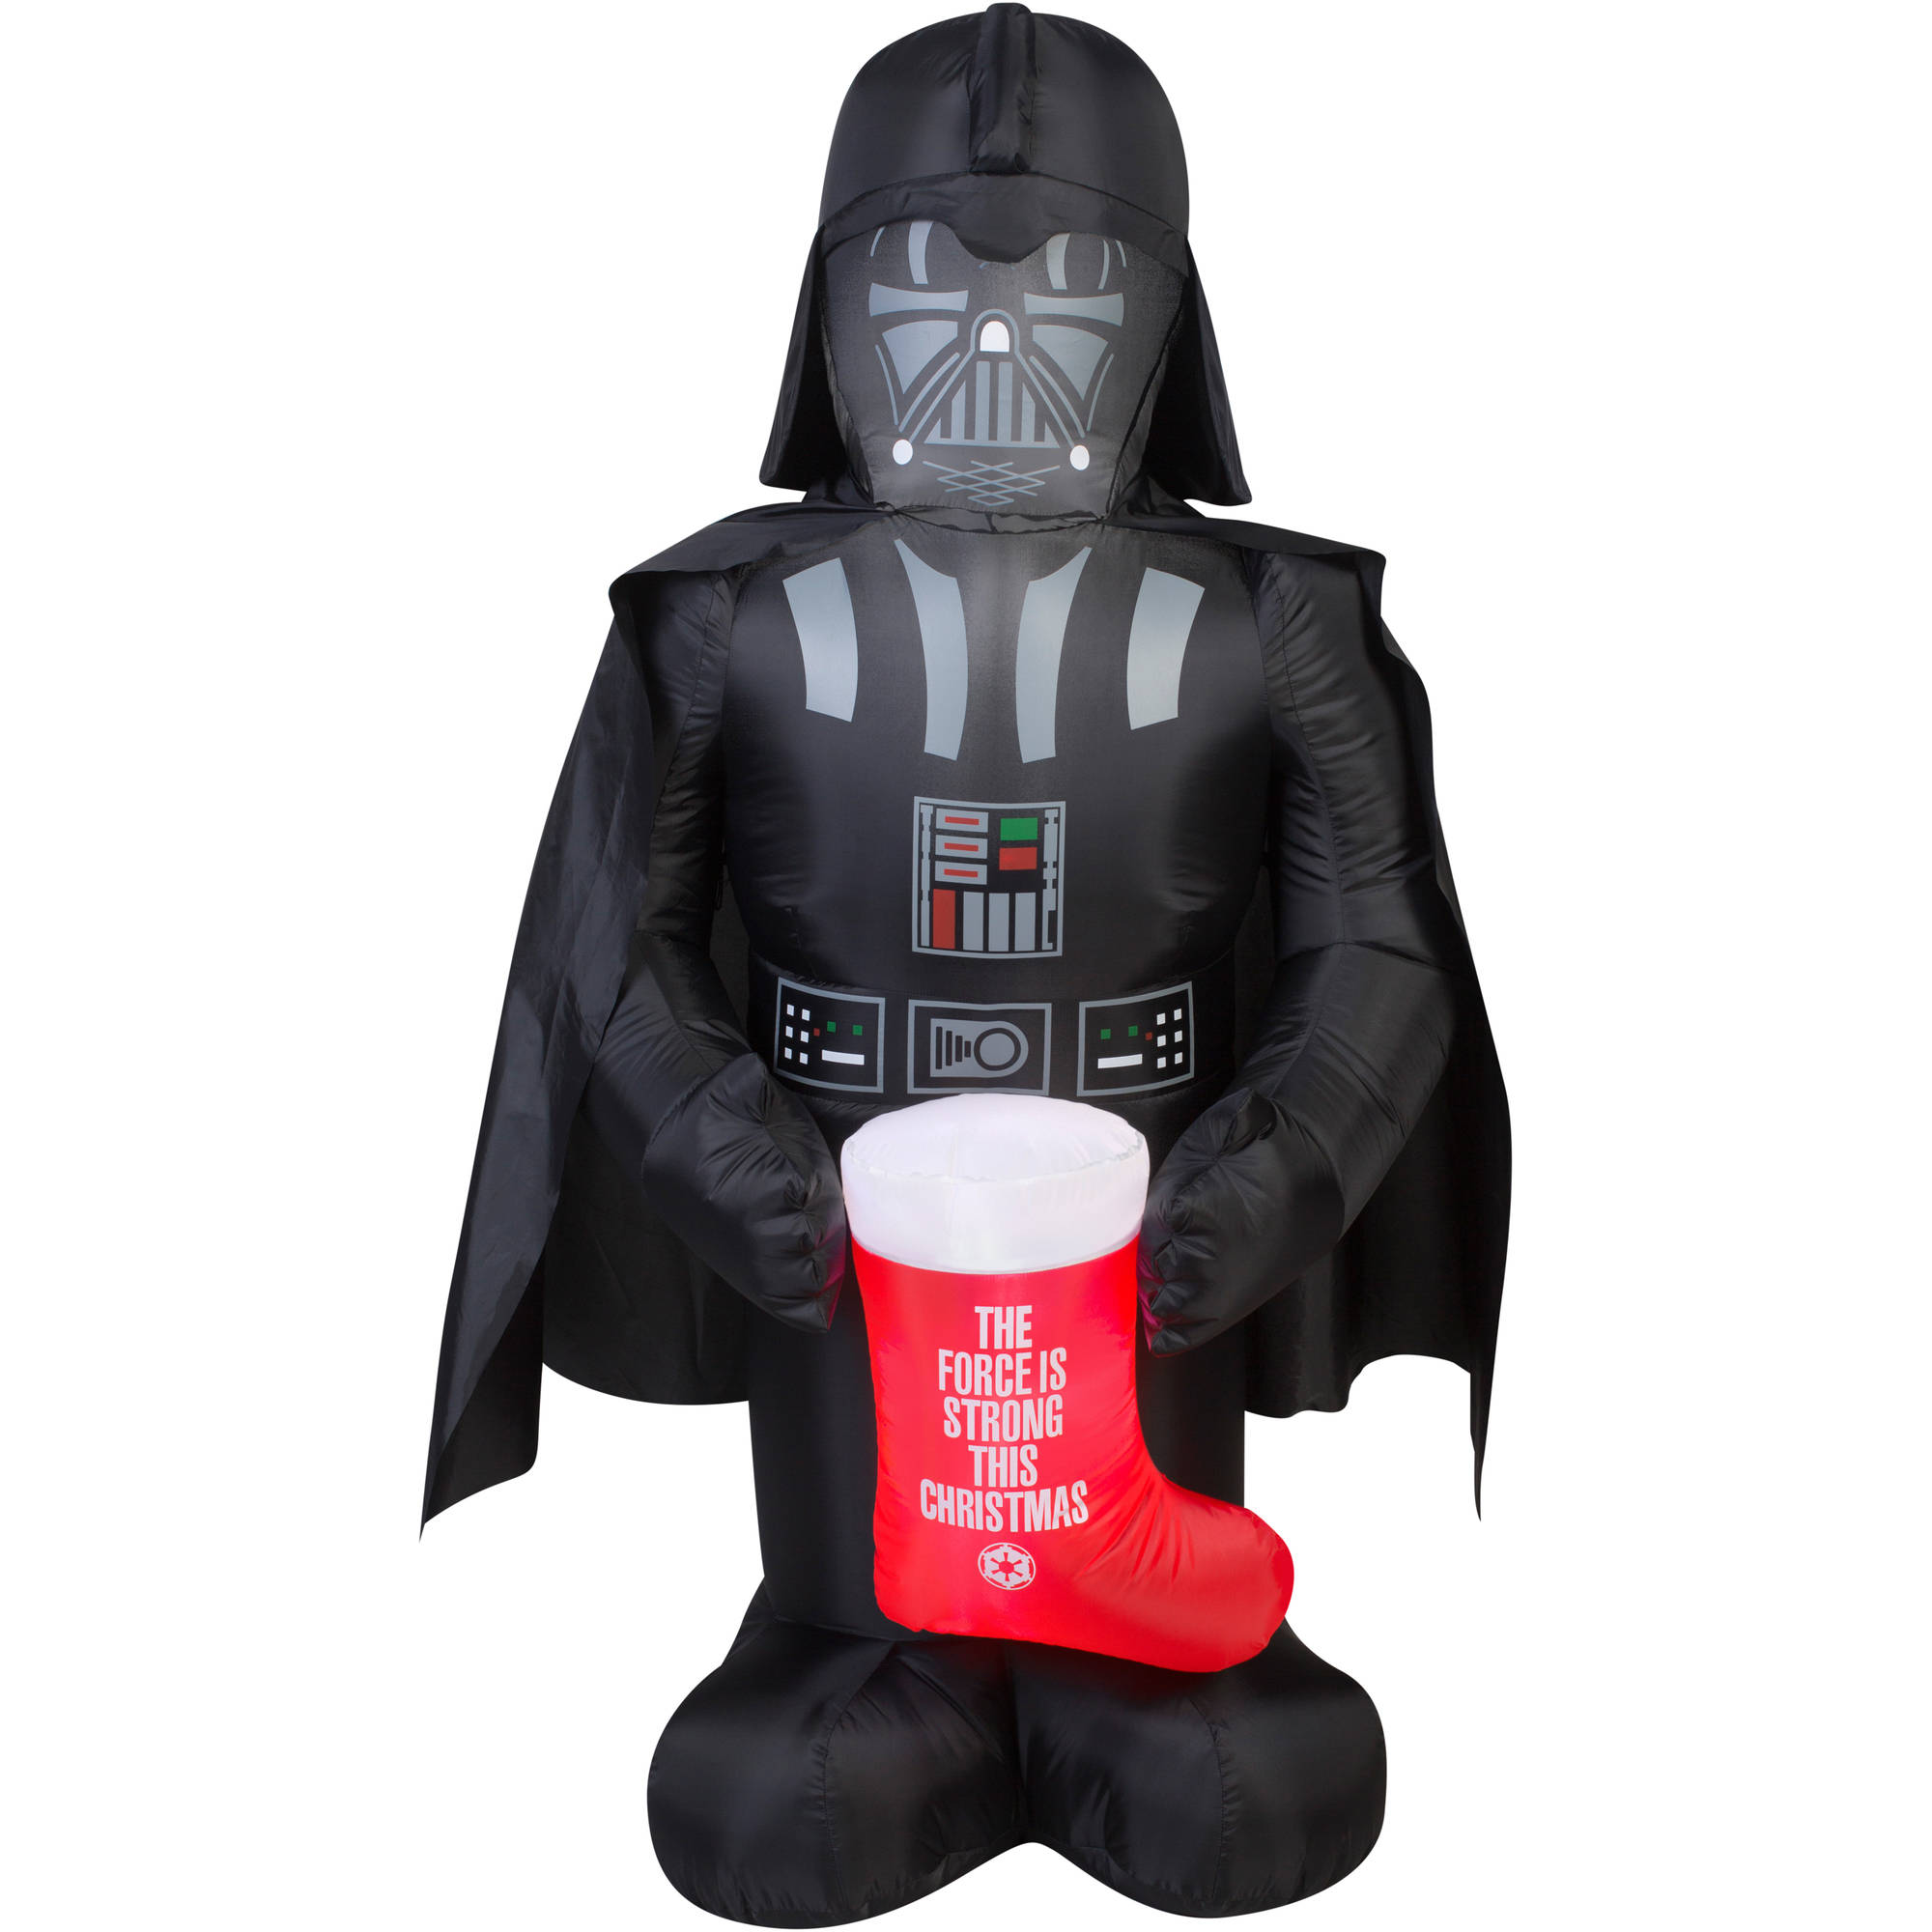 5' Airblown Inflatable Darth Vader with Stocking Star Wars Christmas Inflatable